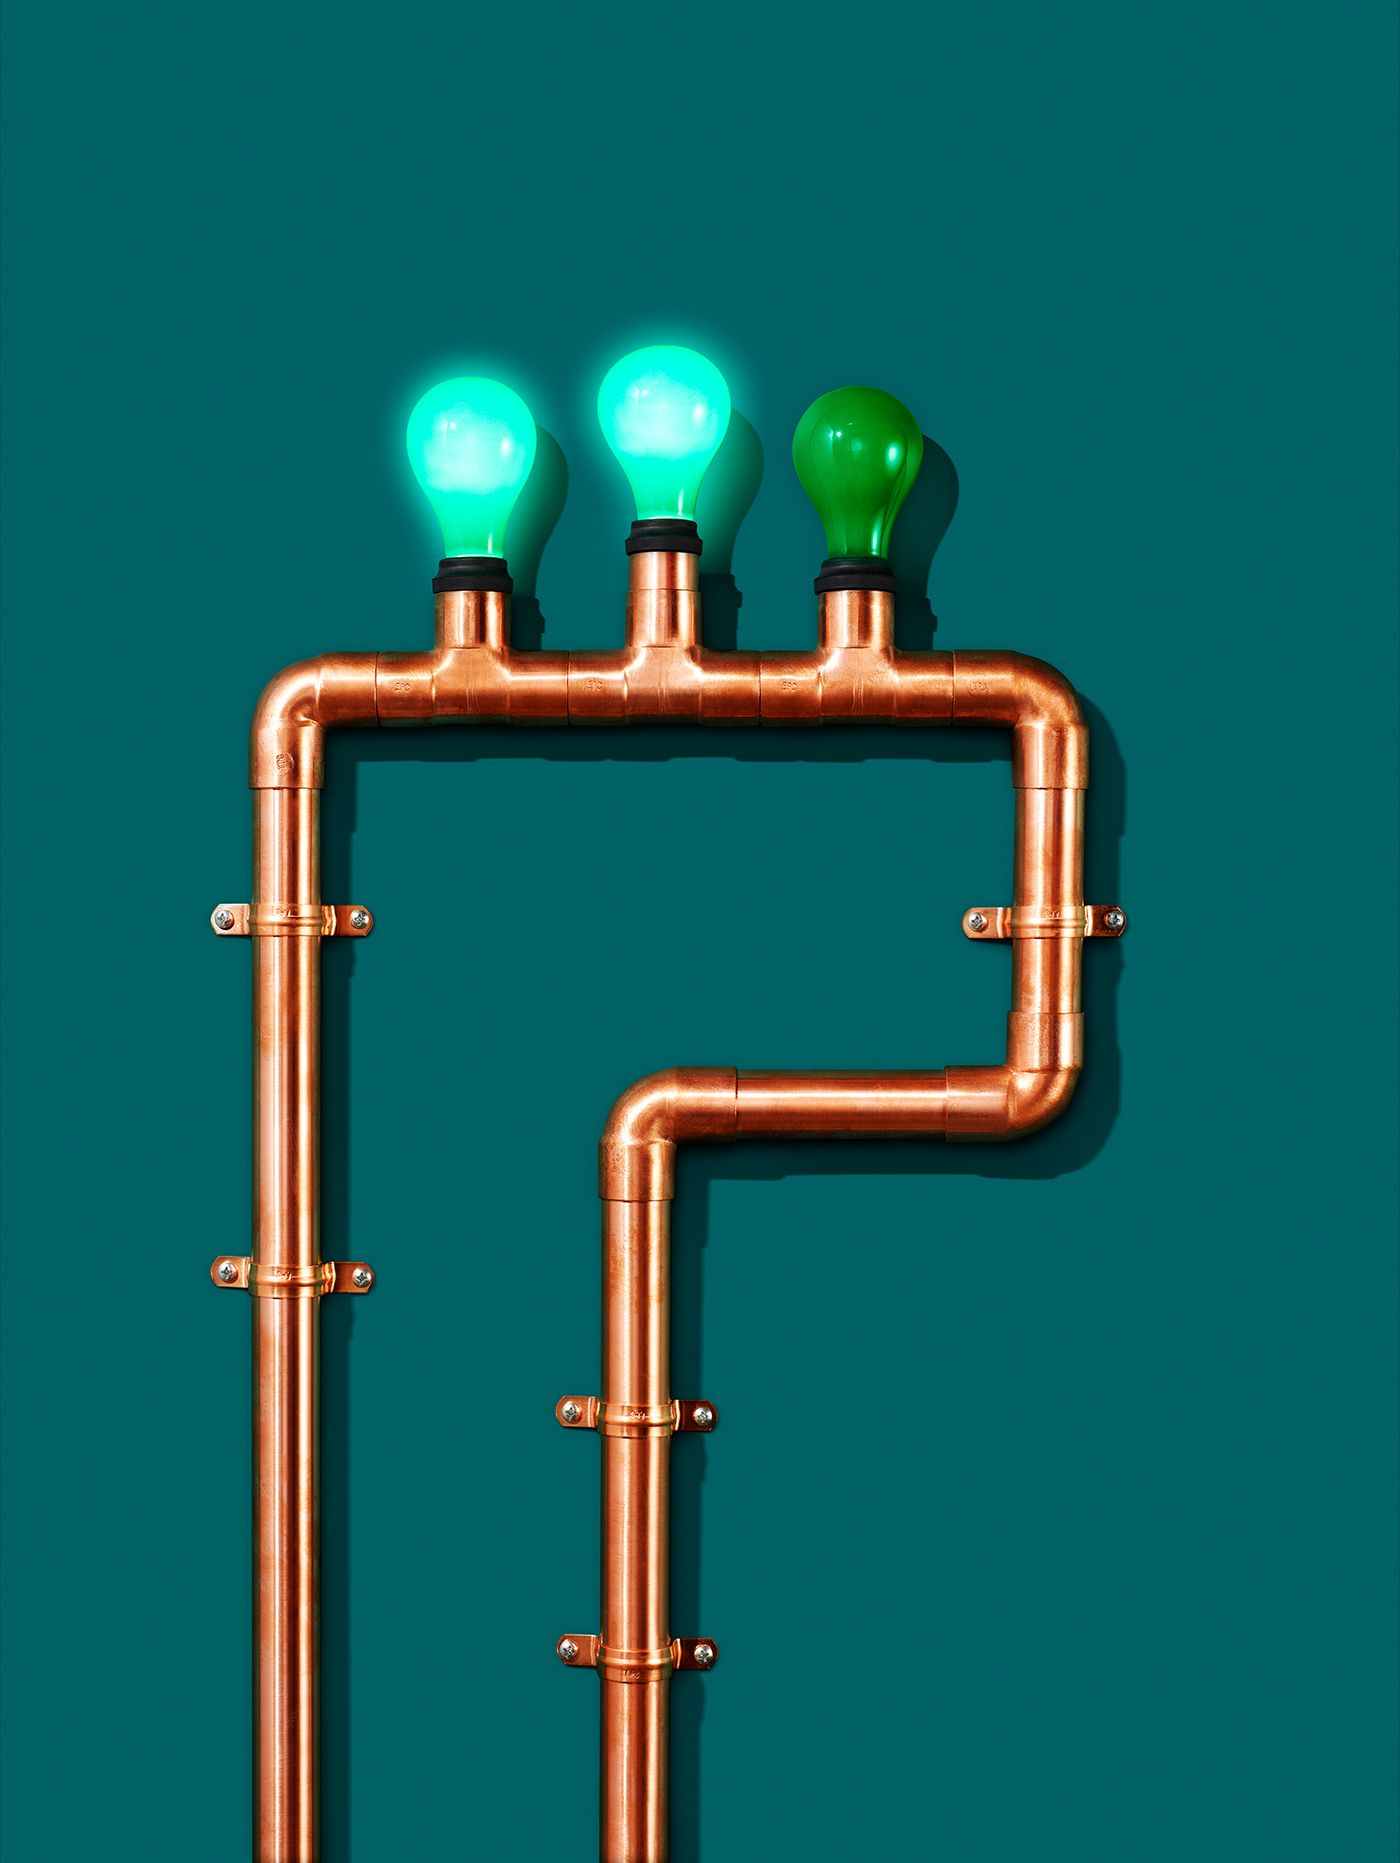 https://tickertapecdn.tdameritrade.com/assets/images/pages/md/Copper pipes with three light bulbs, two are lit and one is not